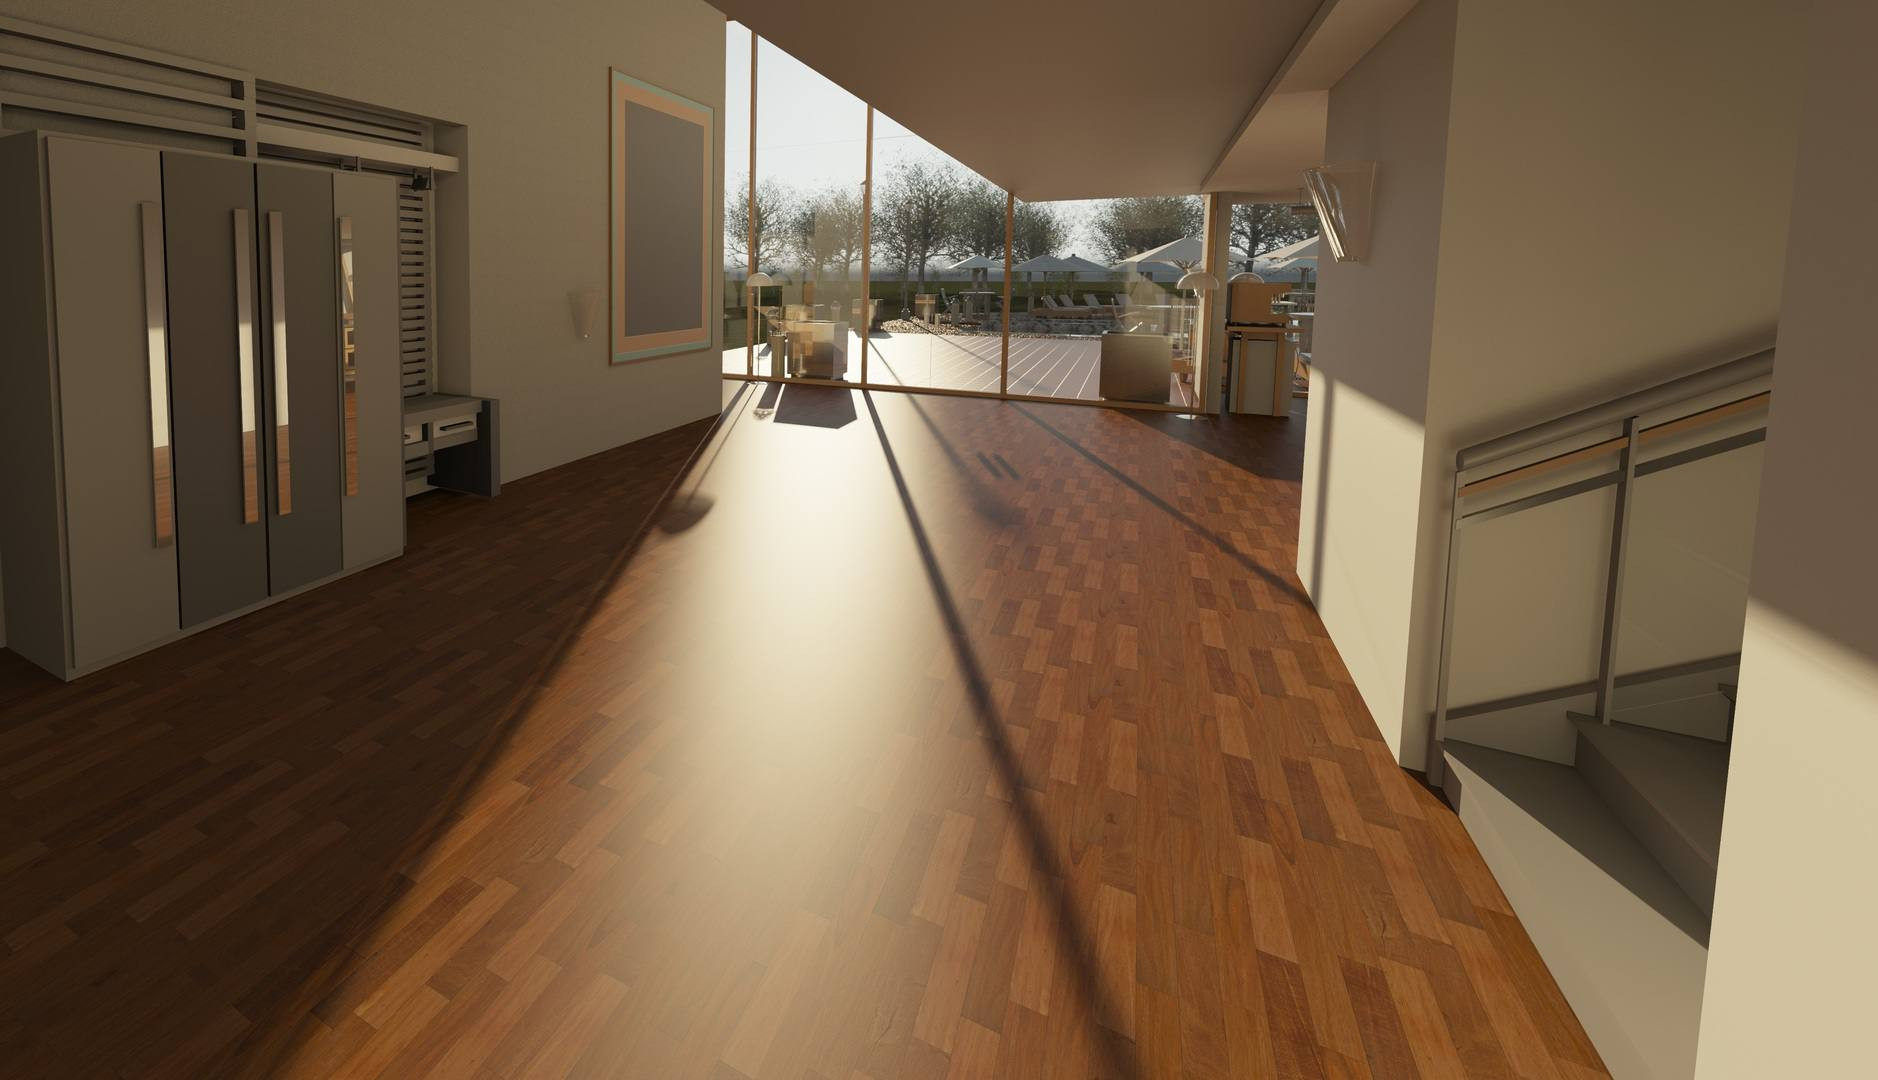 hardwood floor installation cost of common flooring types currently used in renovation and building intended for architecture wood house floor interior window 917178 pxhere com 5ba27a2cc9e77c00503b27b9